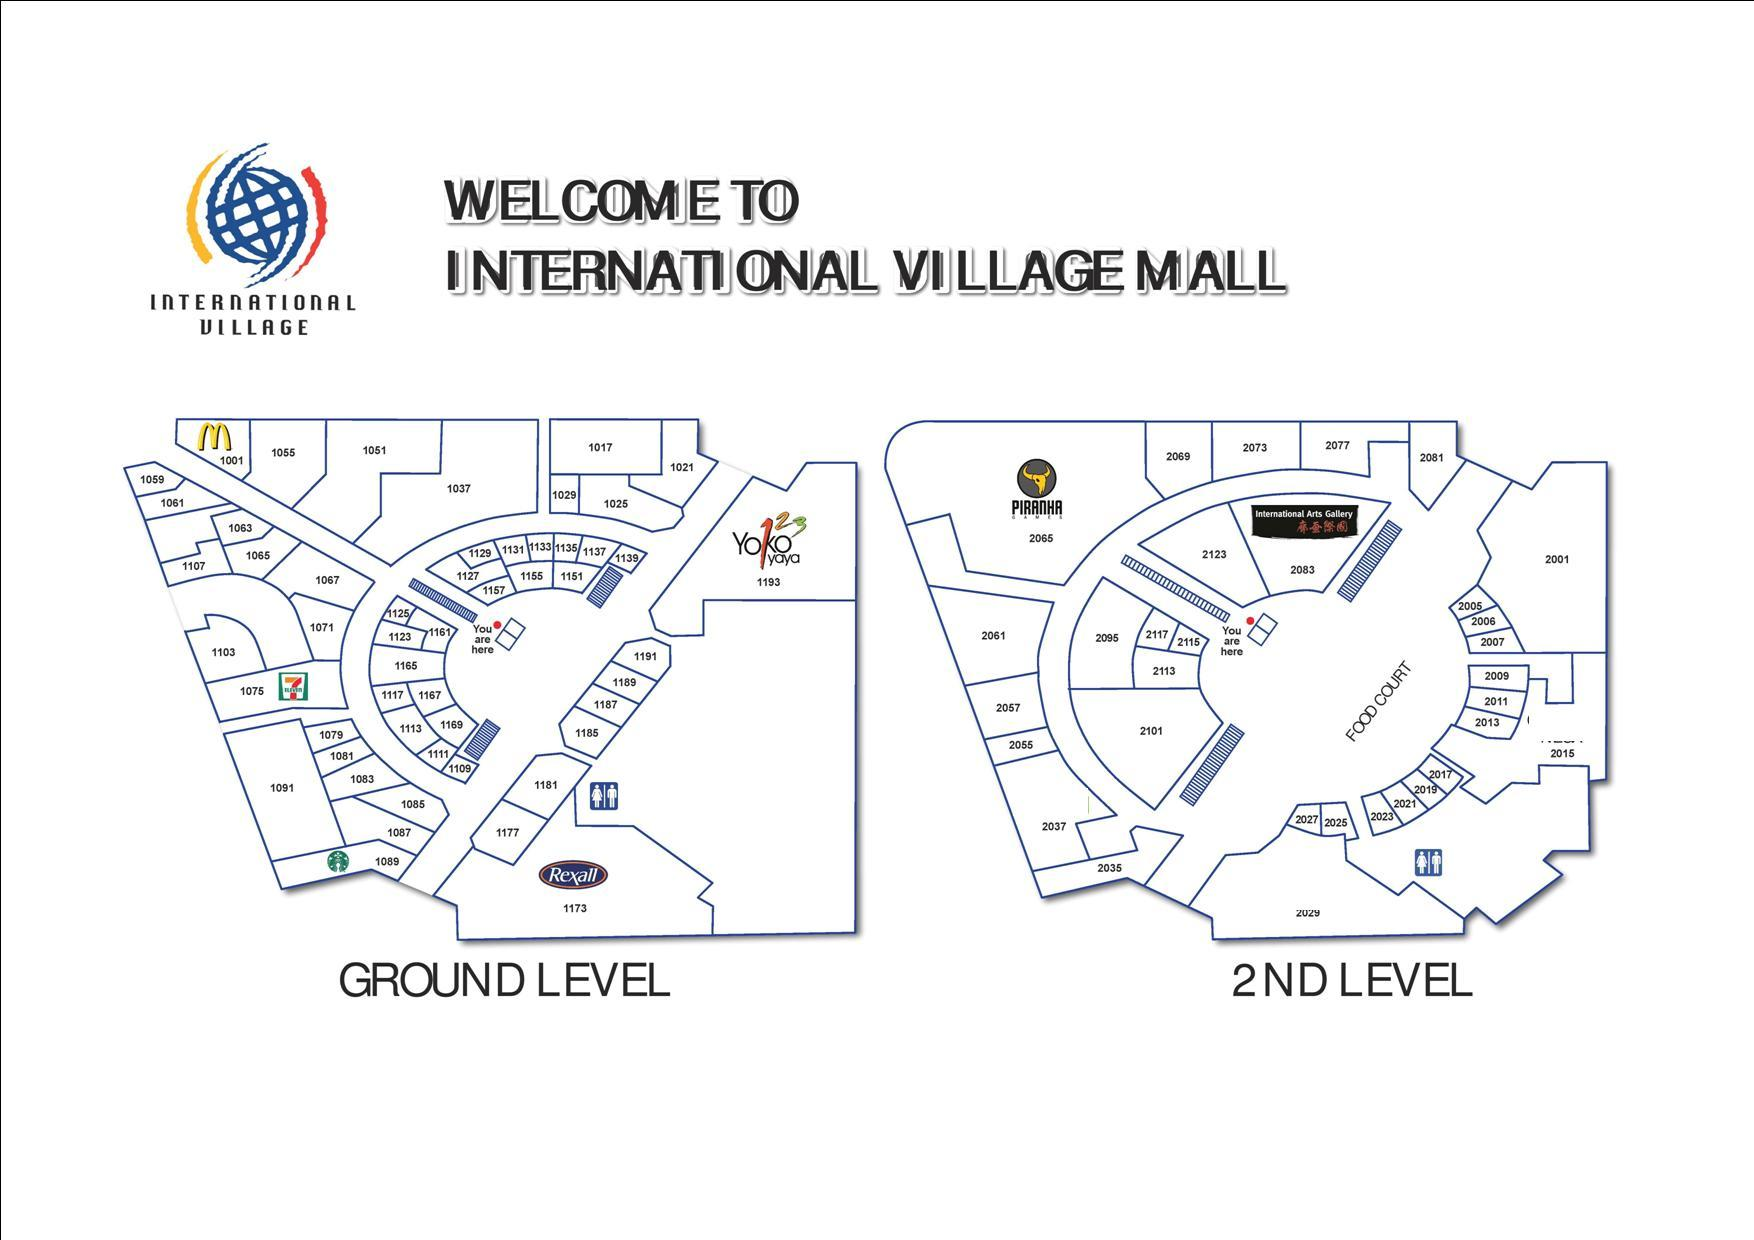 cielo vista mall map with Shopping Mall Floor Plan Design on 28862572 in addition Chs Map also Marketplace Mall Map further V0 001 005587862 2 also Hollister.